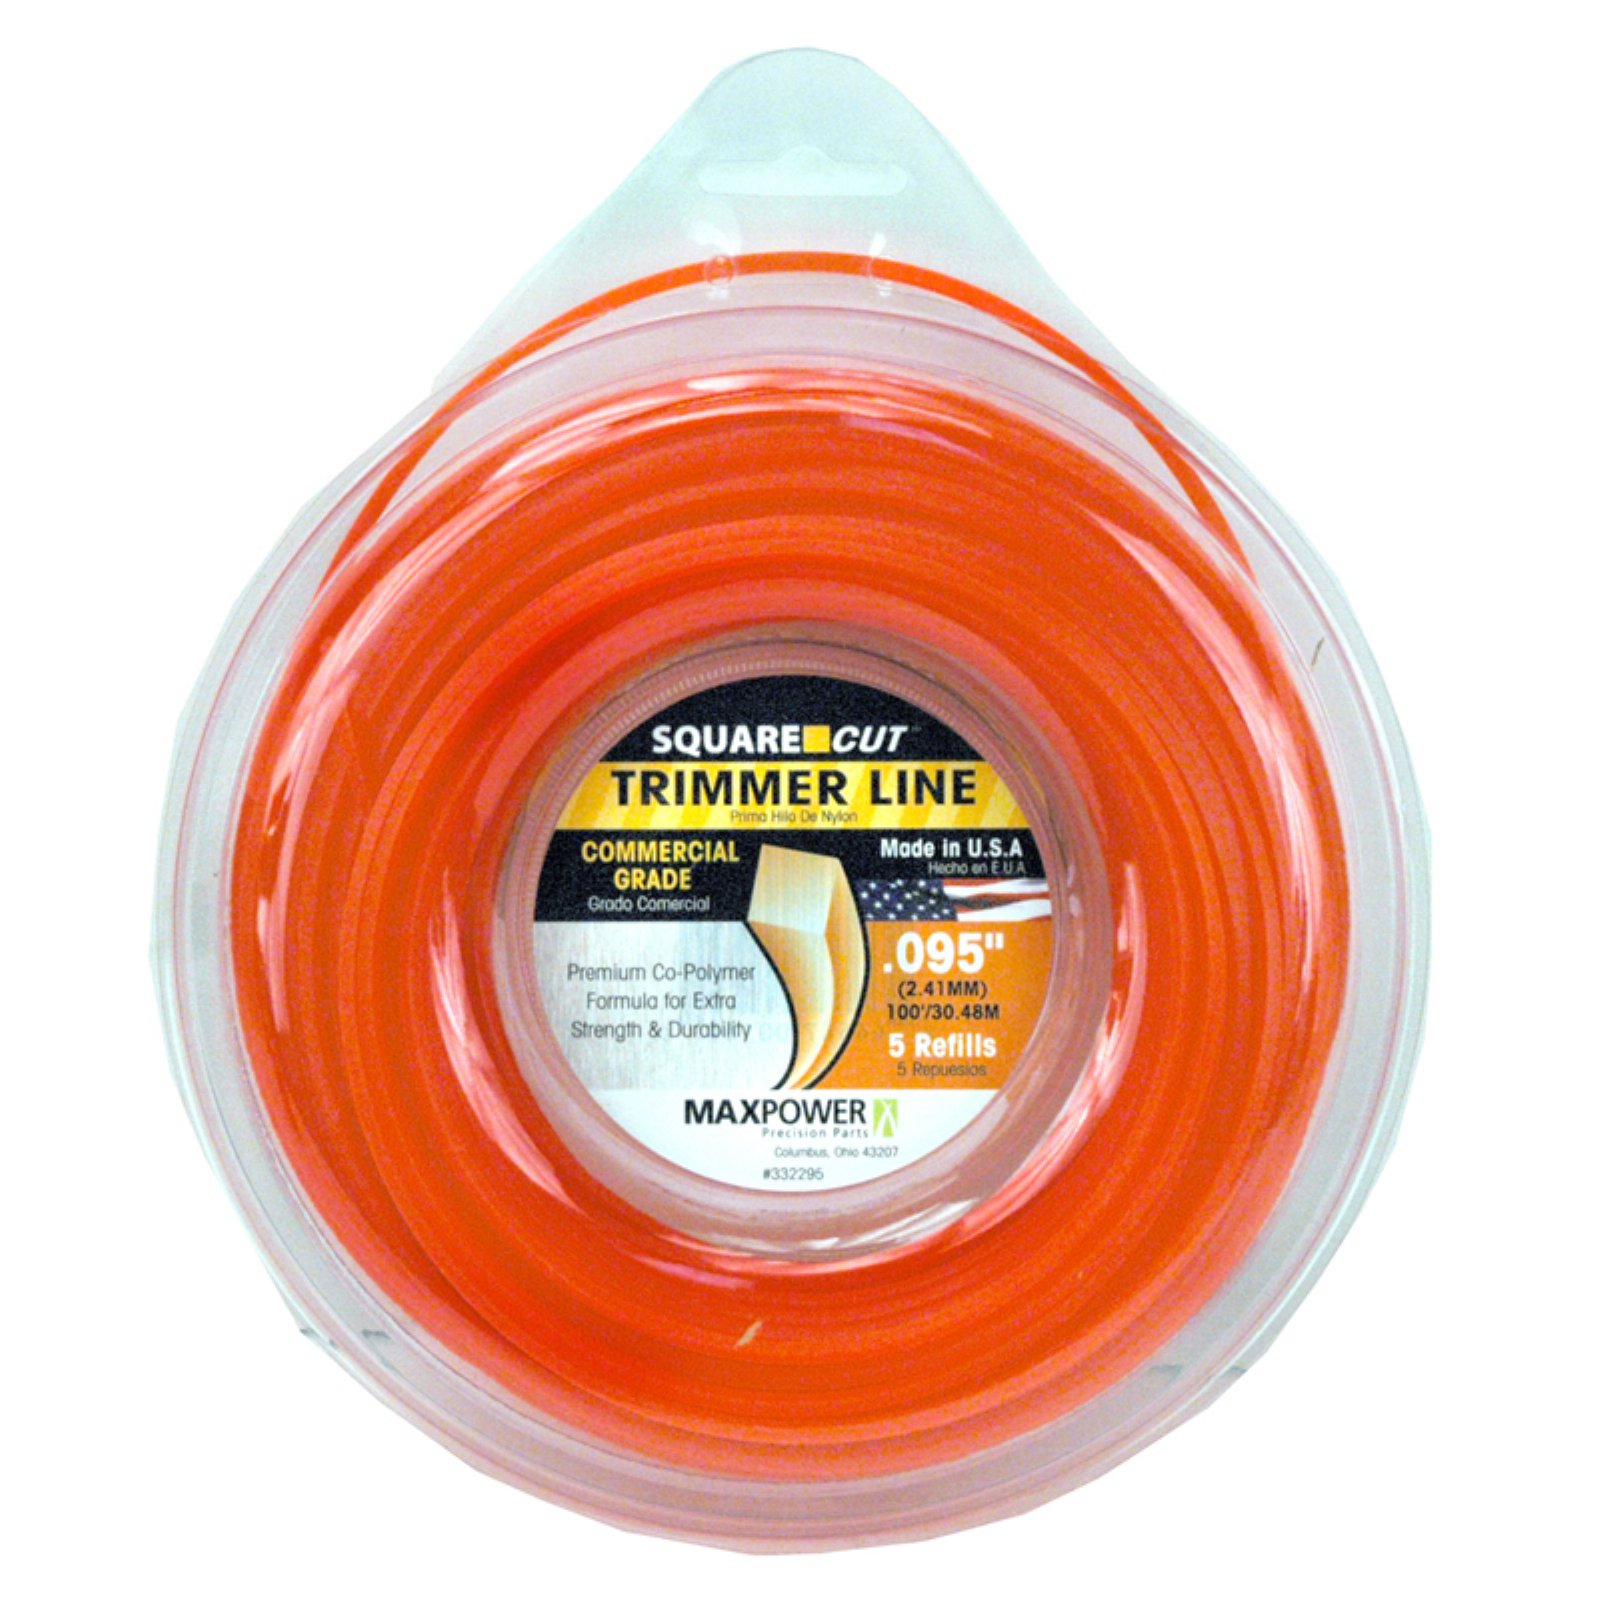 Maxpower 332295 .095 in x 100' Square One Trimmer Line